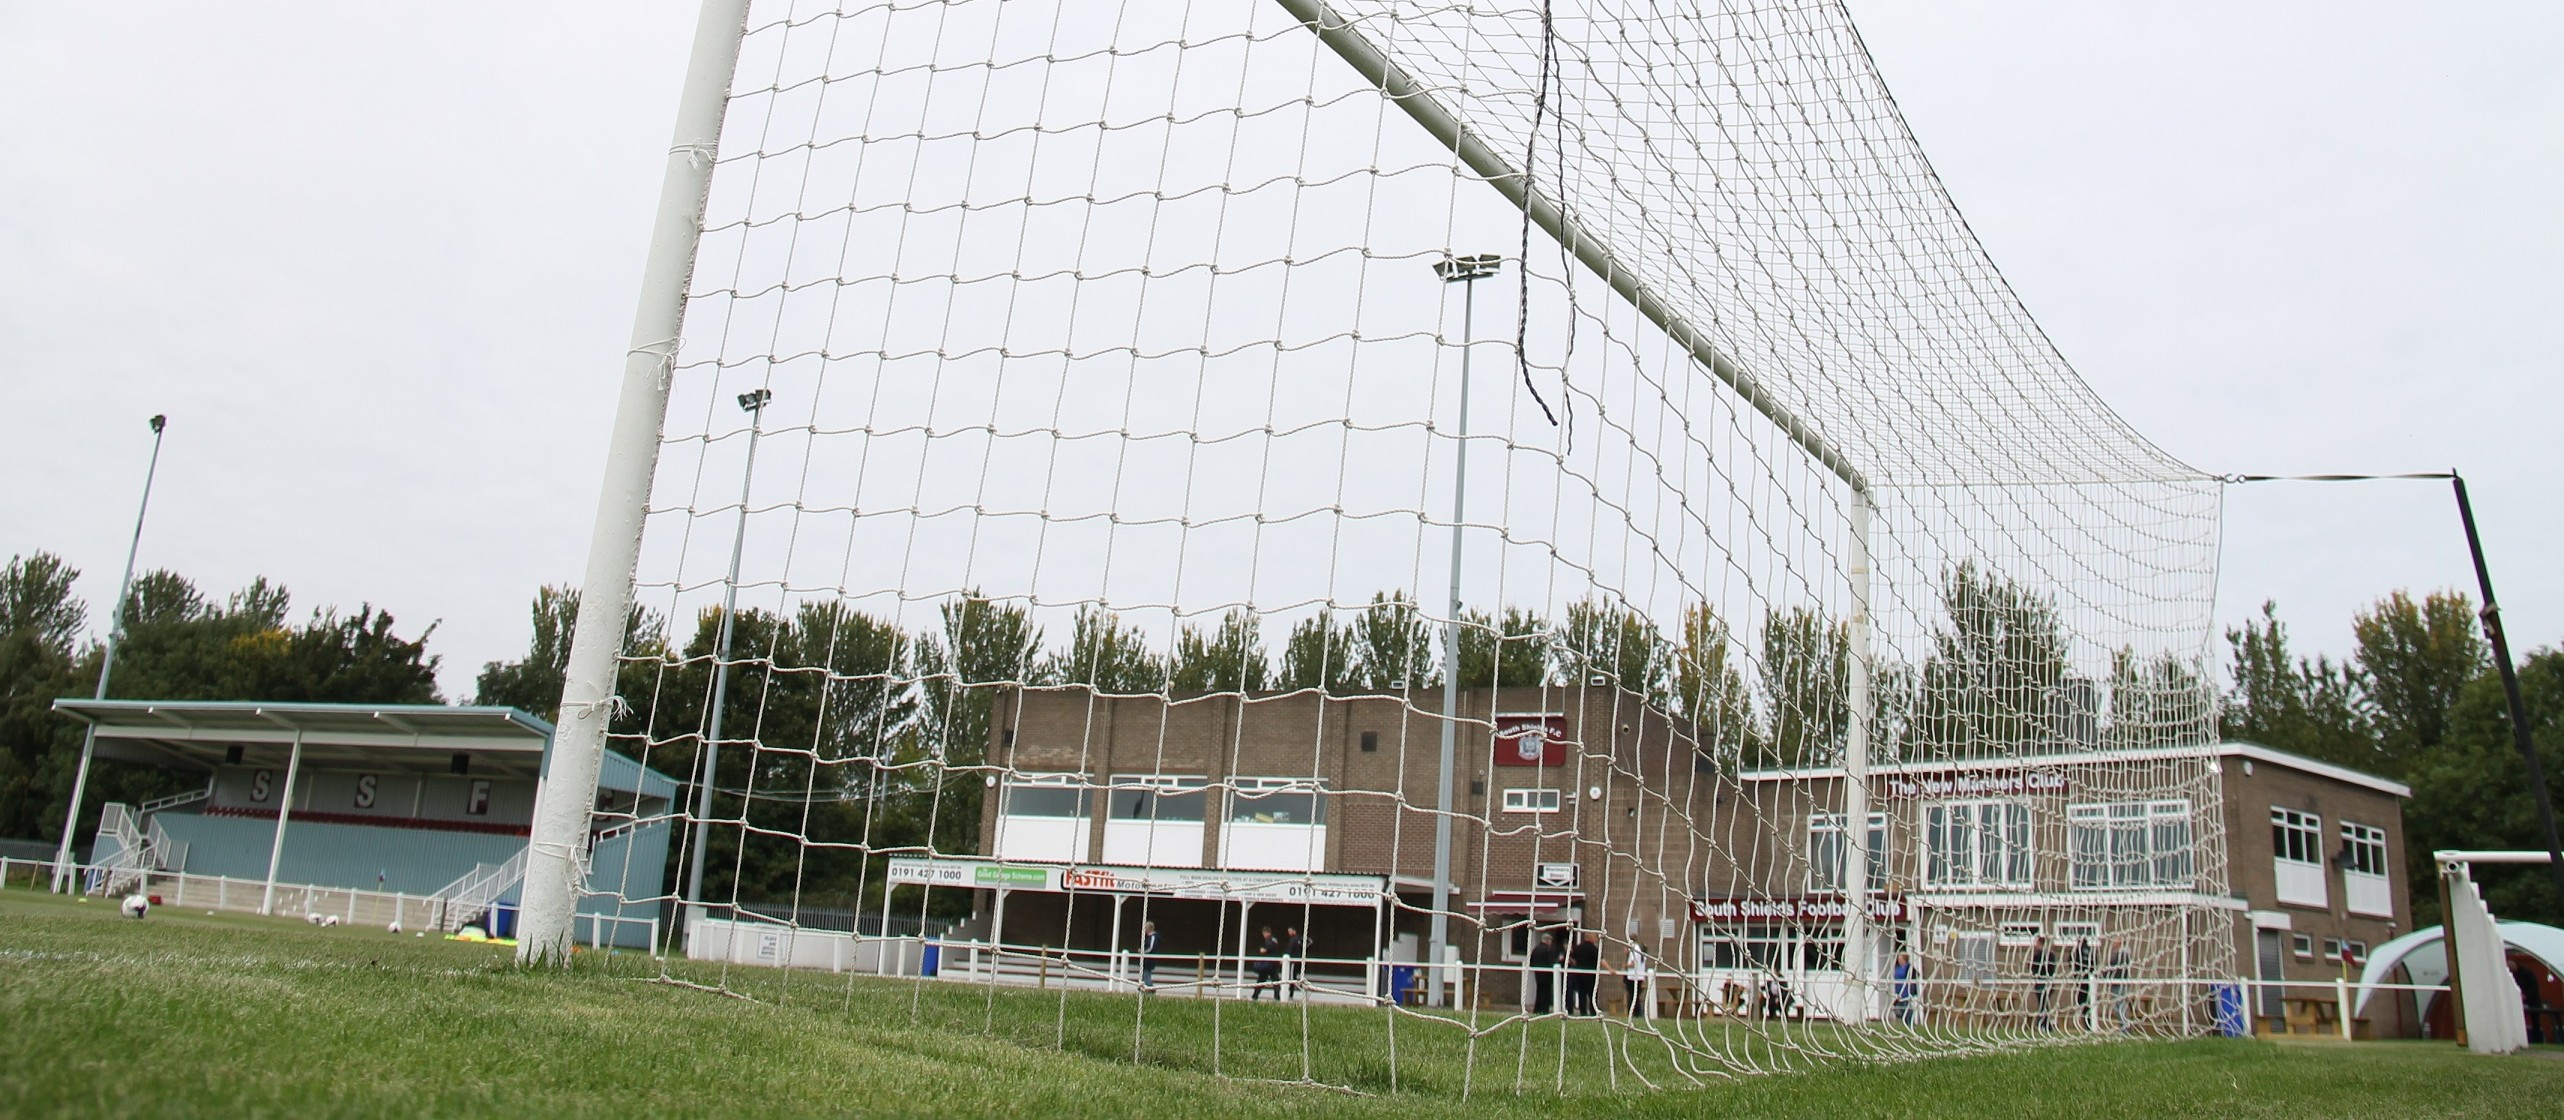 South Shields to host Newton Aycliffe in Durham Challenge Cup semi-final